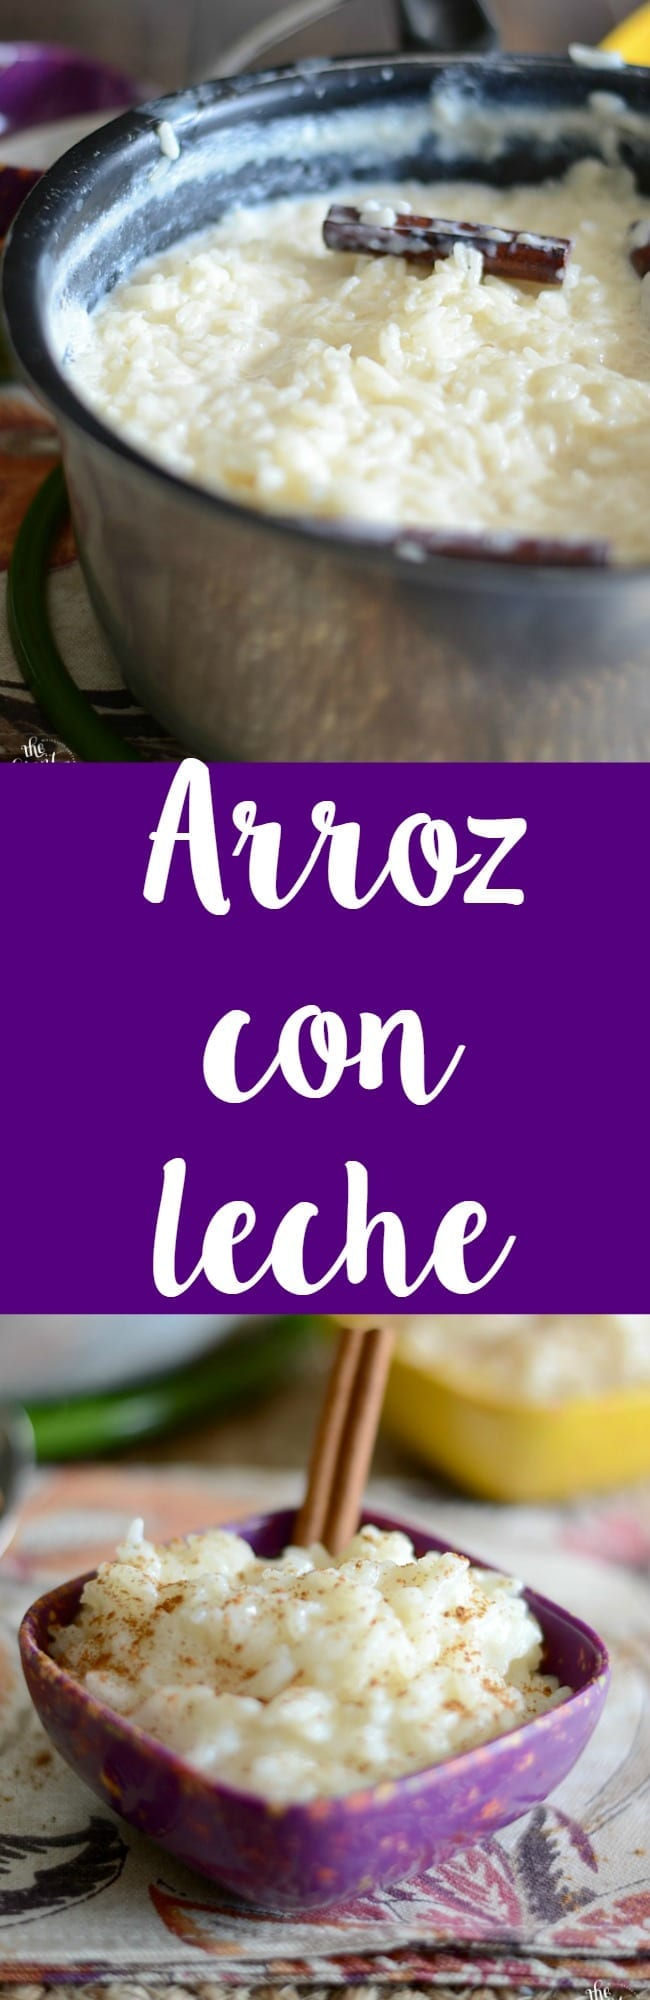 Homemade arroz con leche recipe! This recipe is super easy to make and everyone will love it!